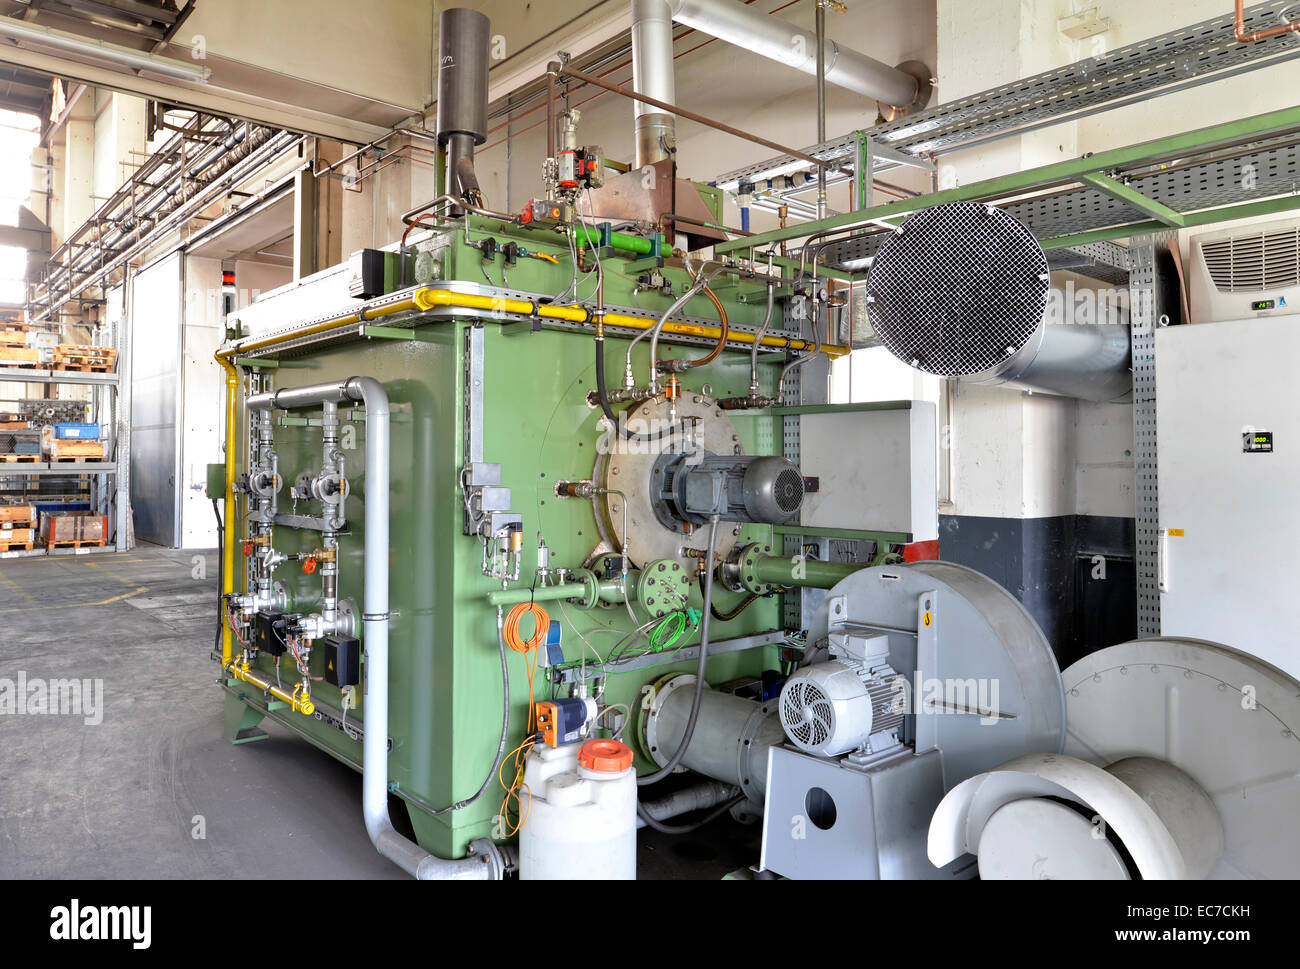 Process engineering machine in a factory hall - Stock Image